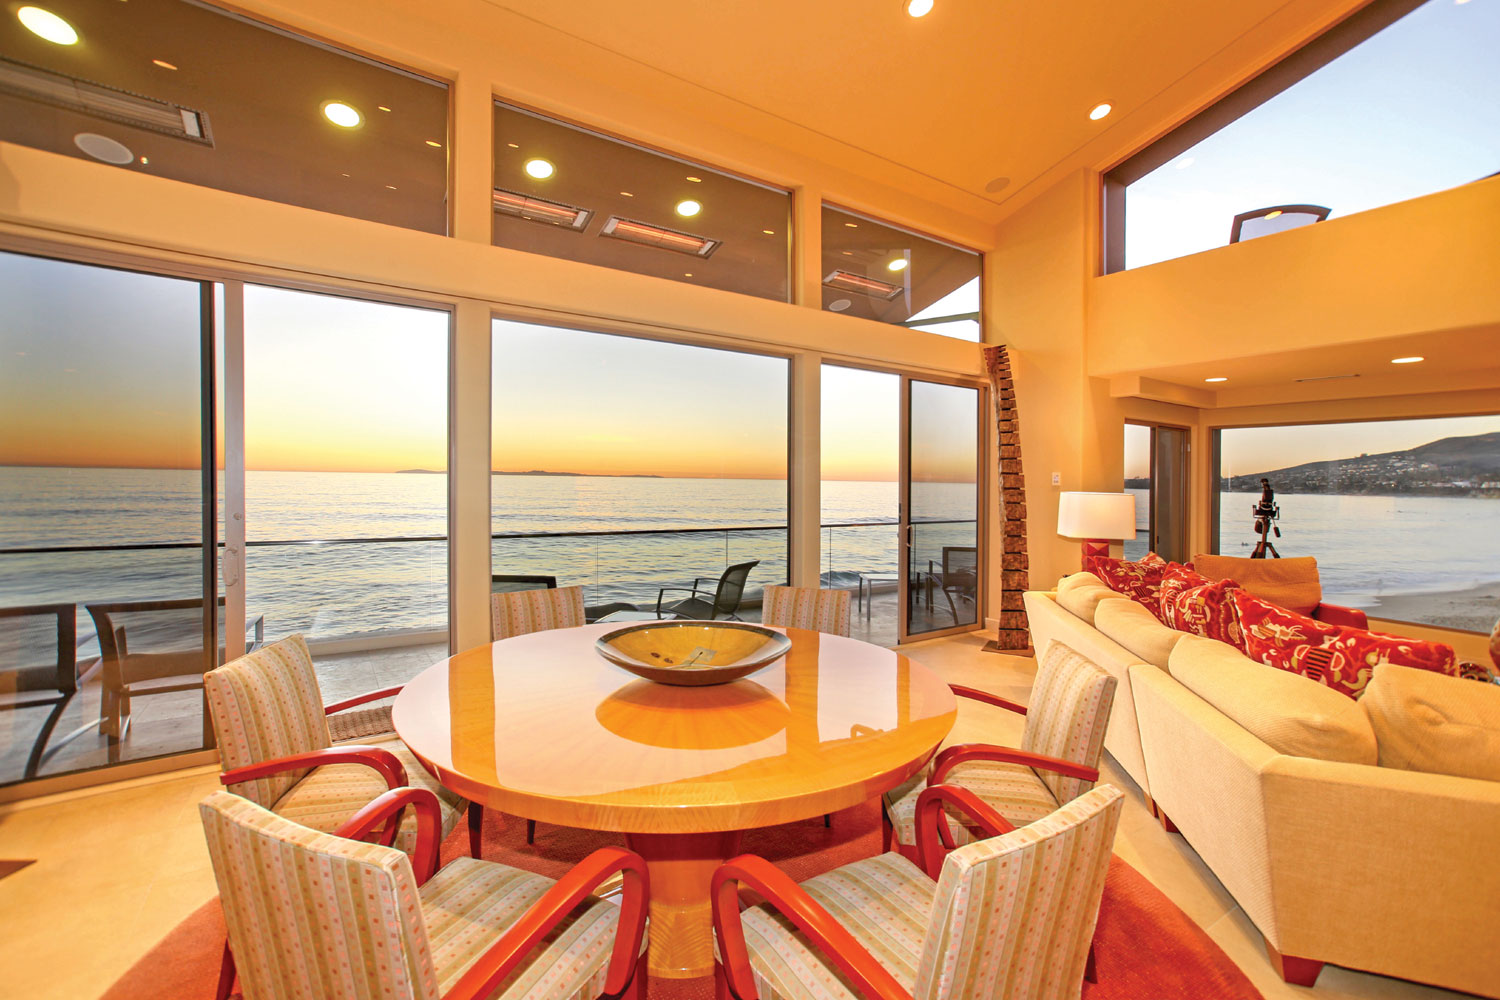 Breathtaking views of Catalina Island along with the picturesque evening sunsets are a prelude to the presentation of city lights that can be seen from almost every room in this exquisite home.